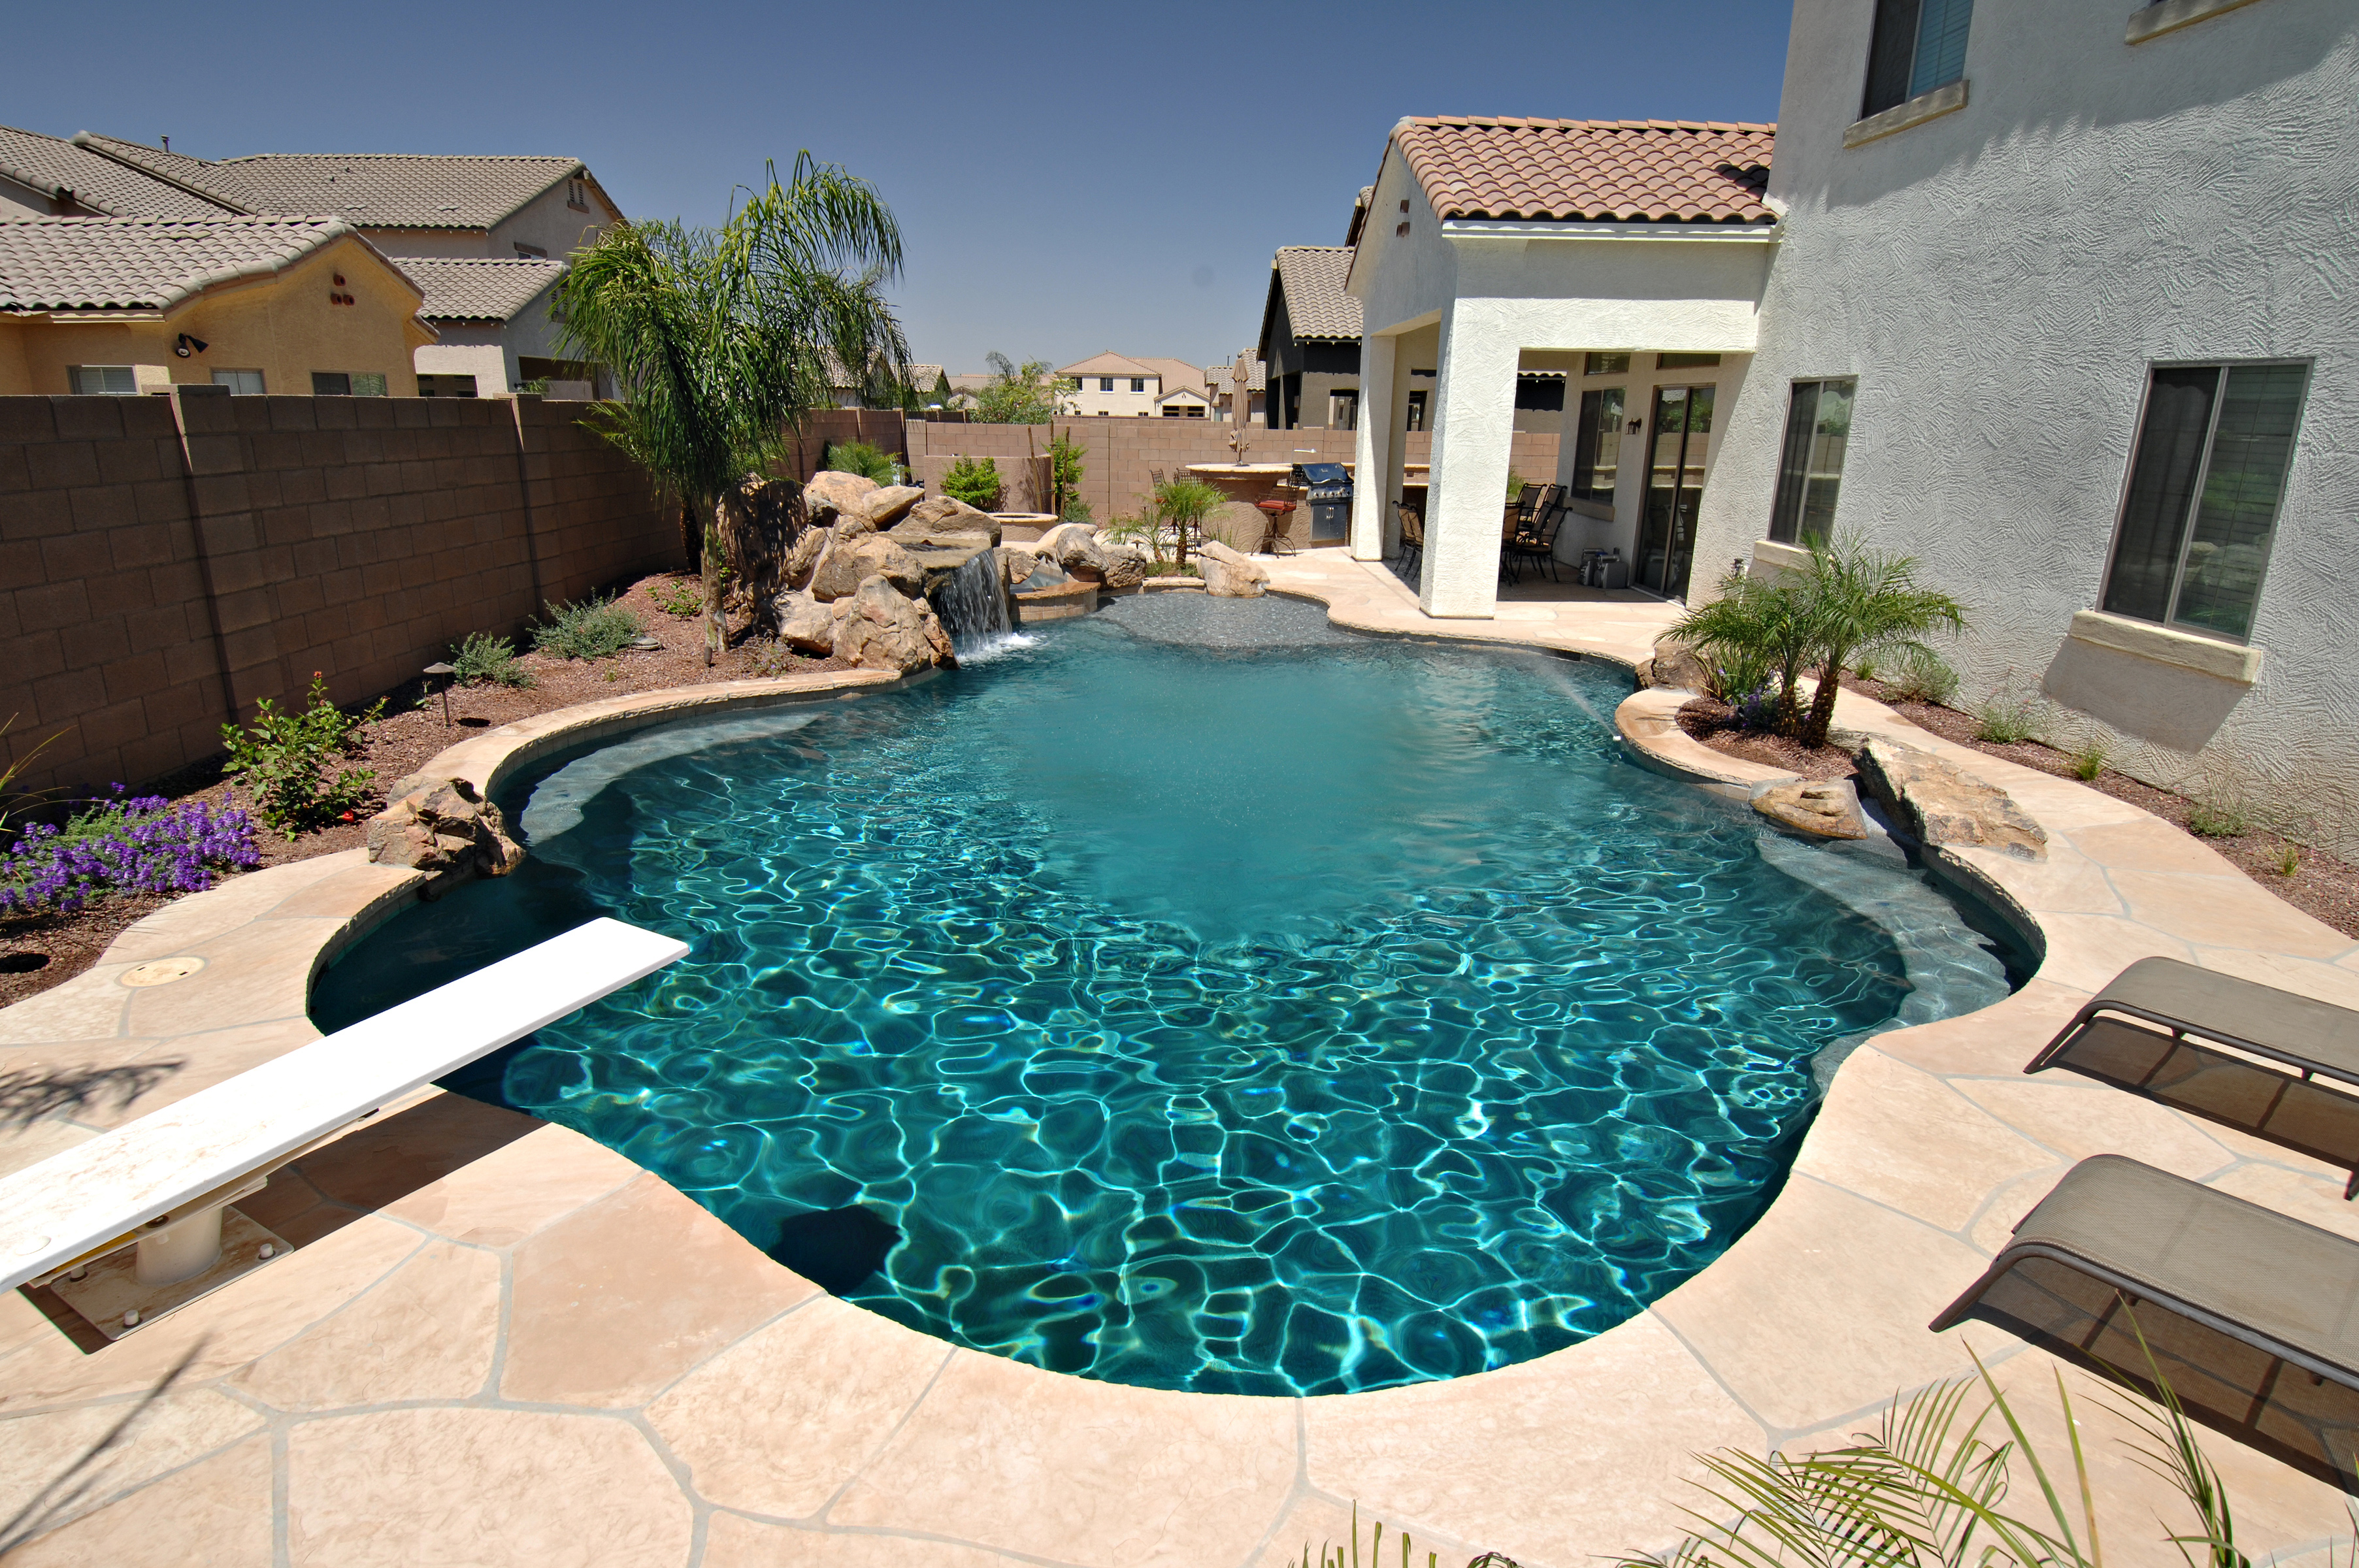 Backyard Landscaping Ideas-Swimming Pool Design ... on Backyard Pool Landscape Designs id=25604